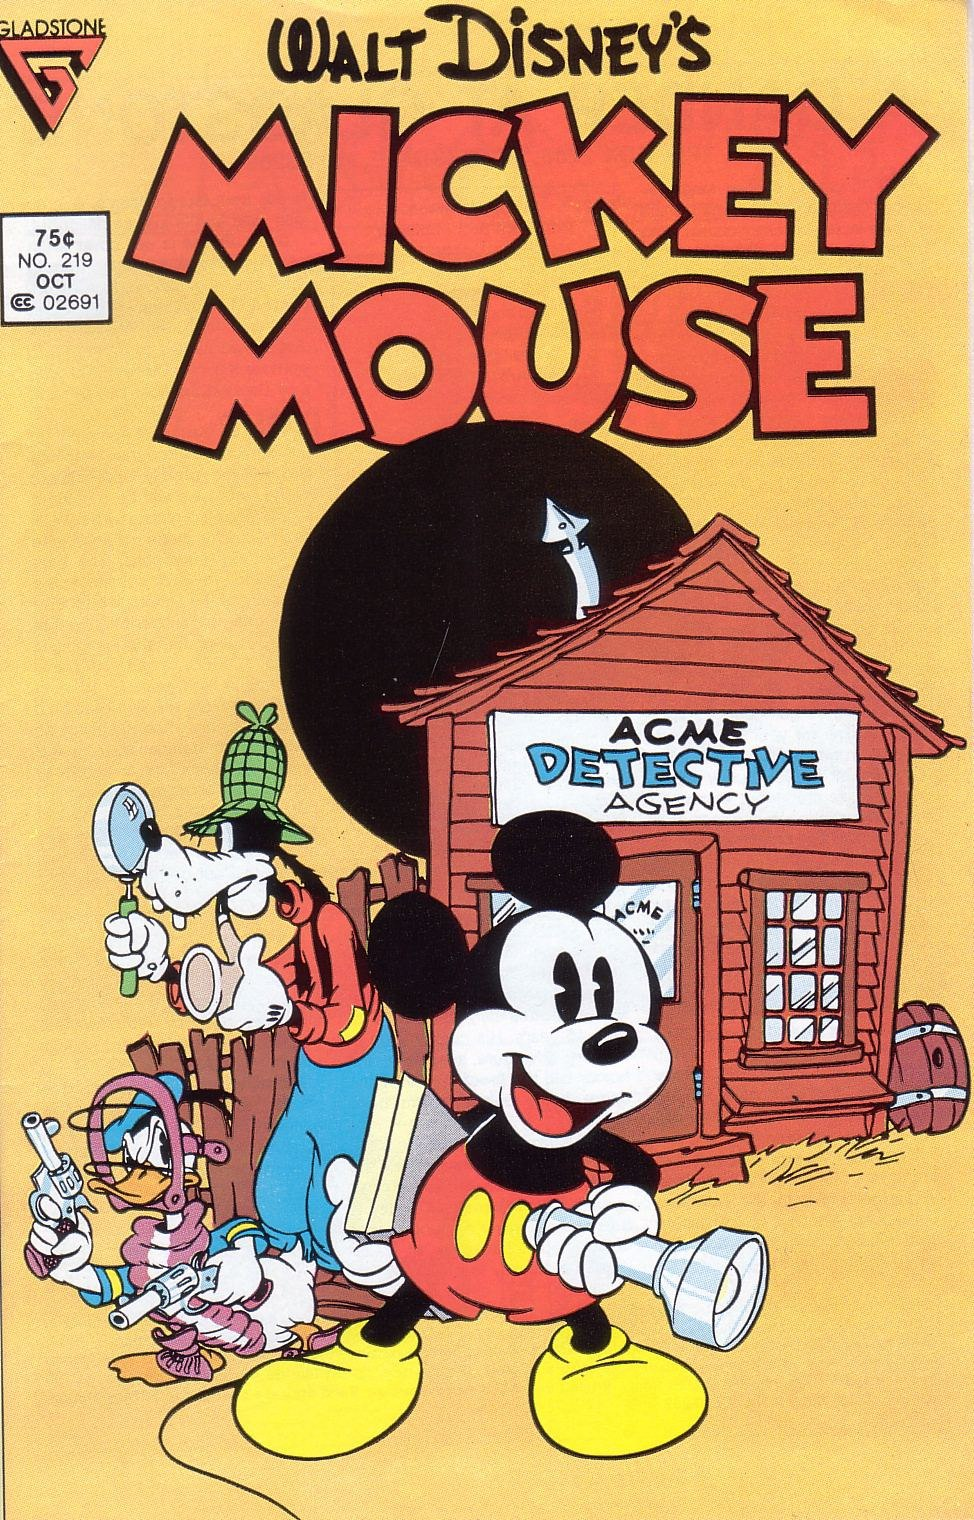 Mickey Mouse (comic book) | Disney Wiki | FANDOM powered by Wikia